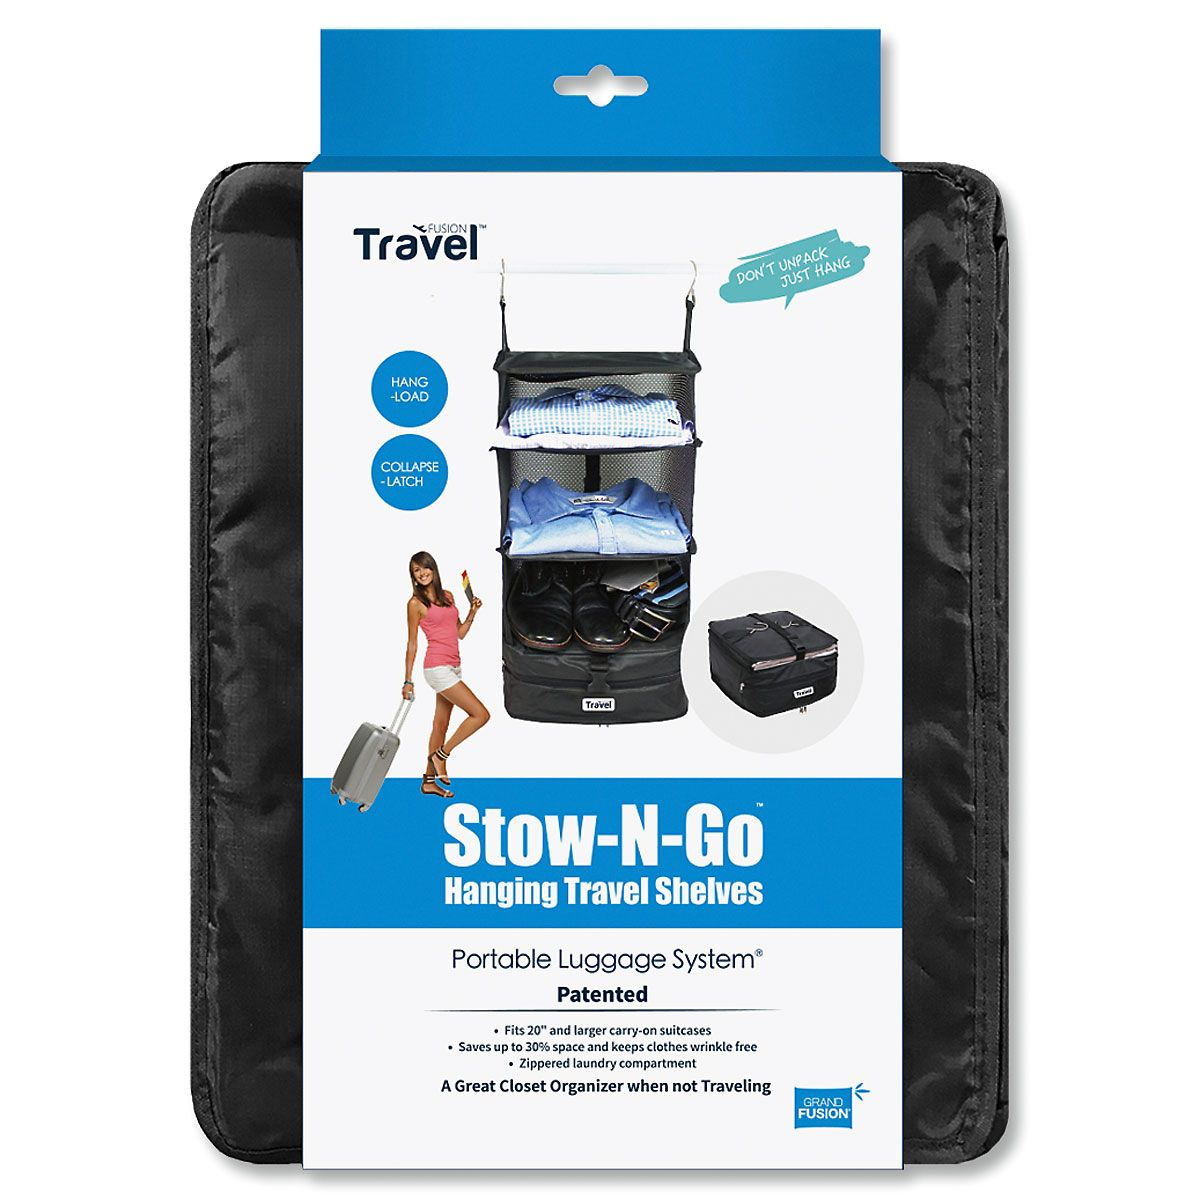 Stow-N-Go Hanging Travel Shelves